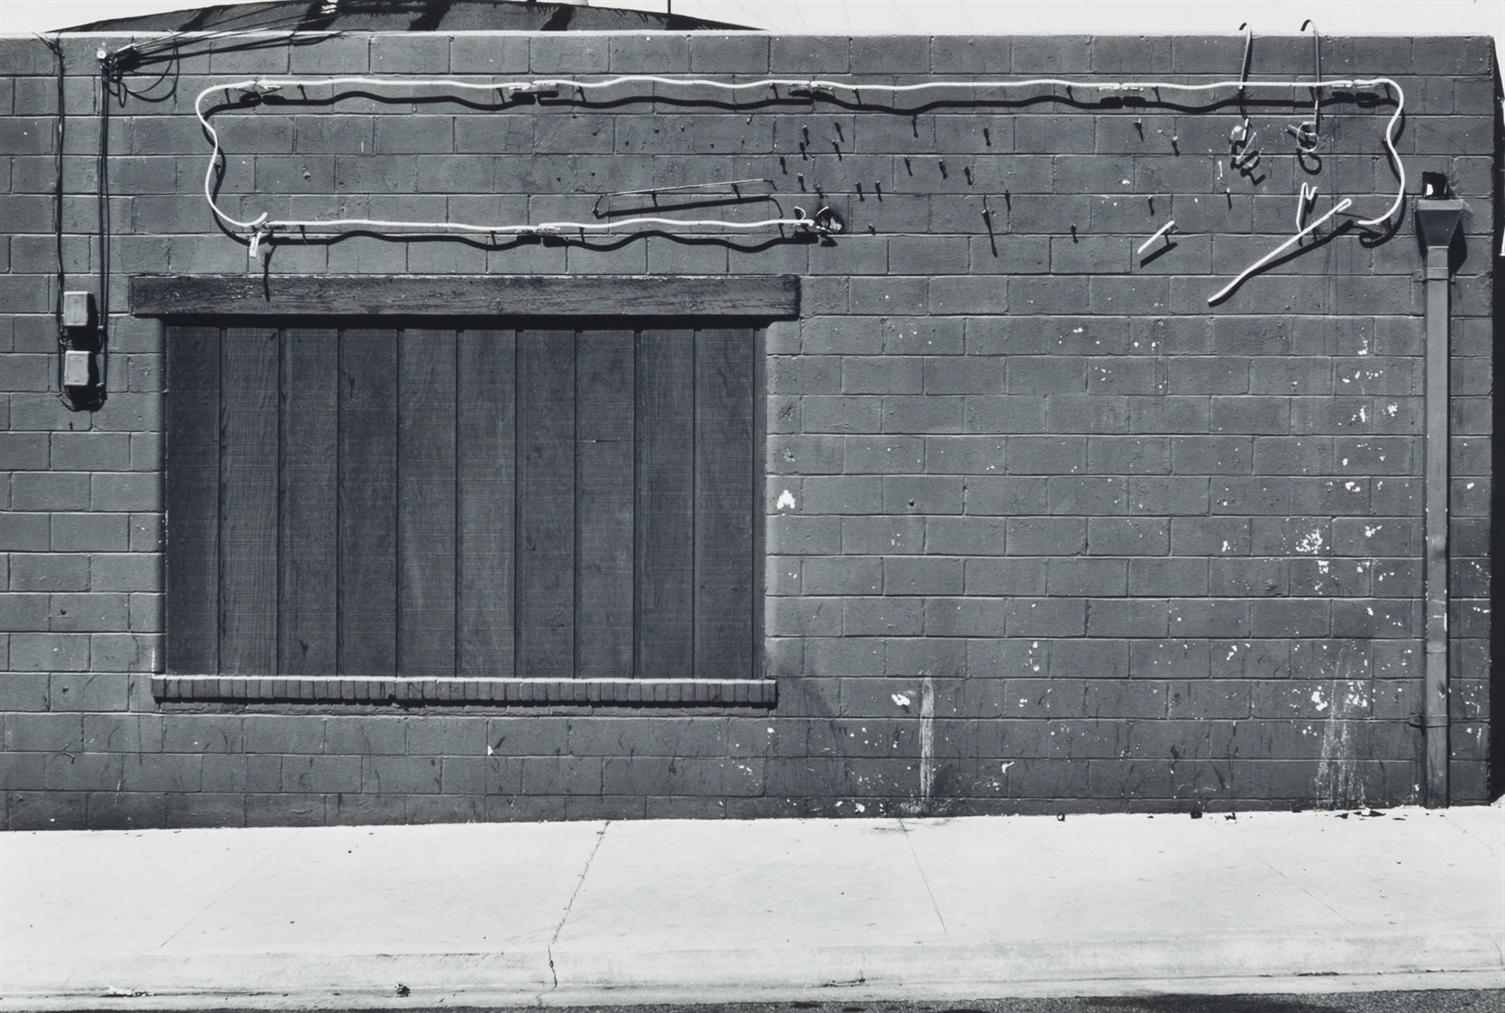 Lewis Baltz-Seaside, From The Prototype Works-1970